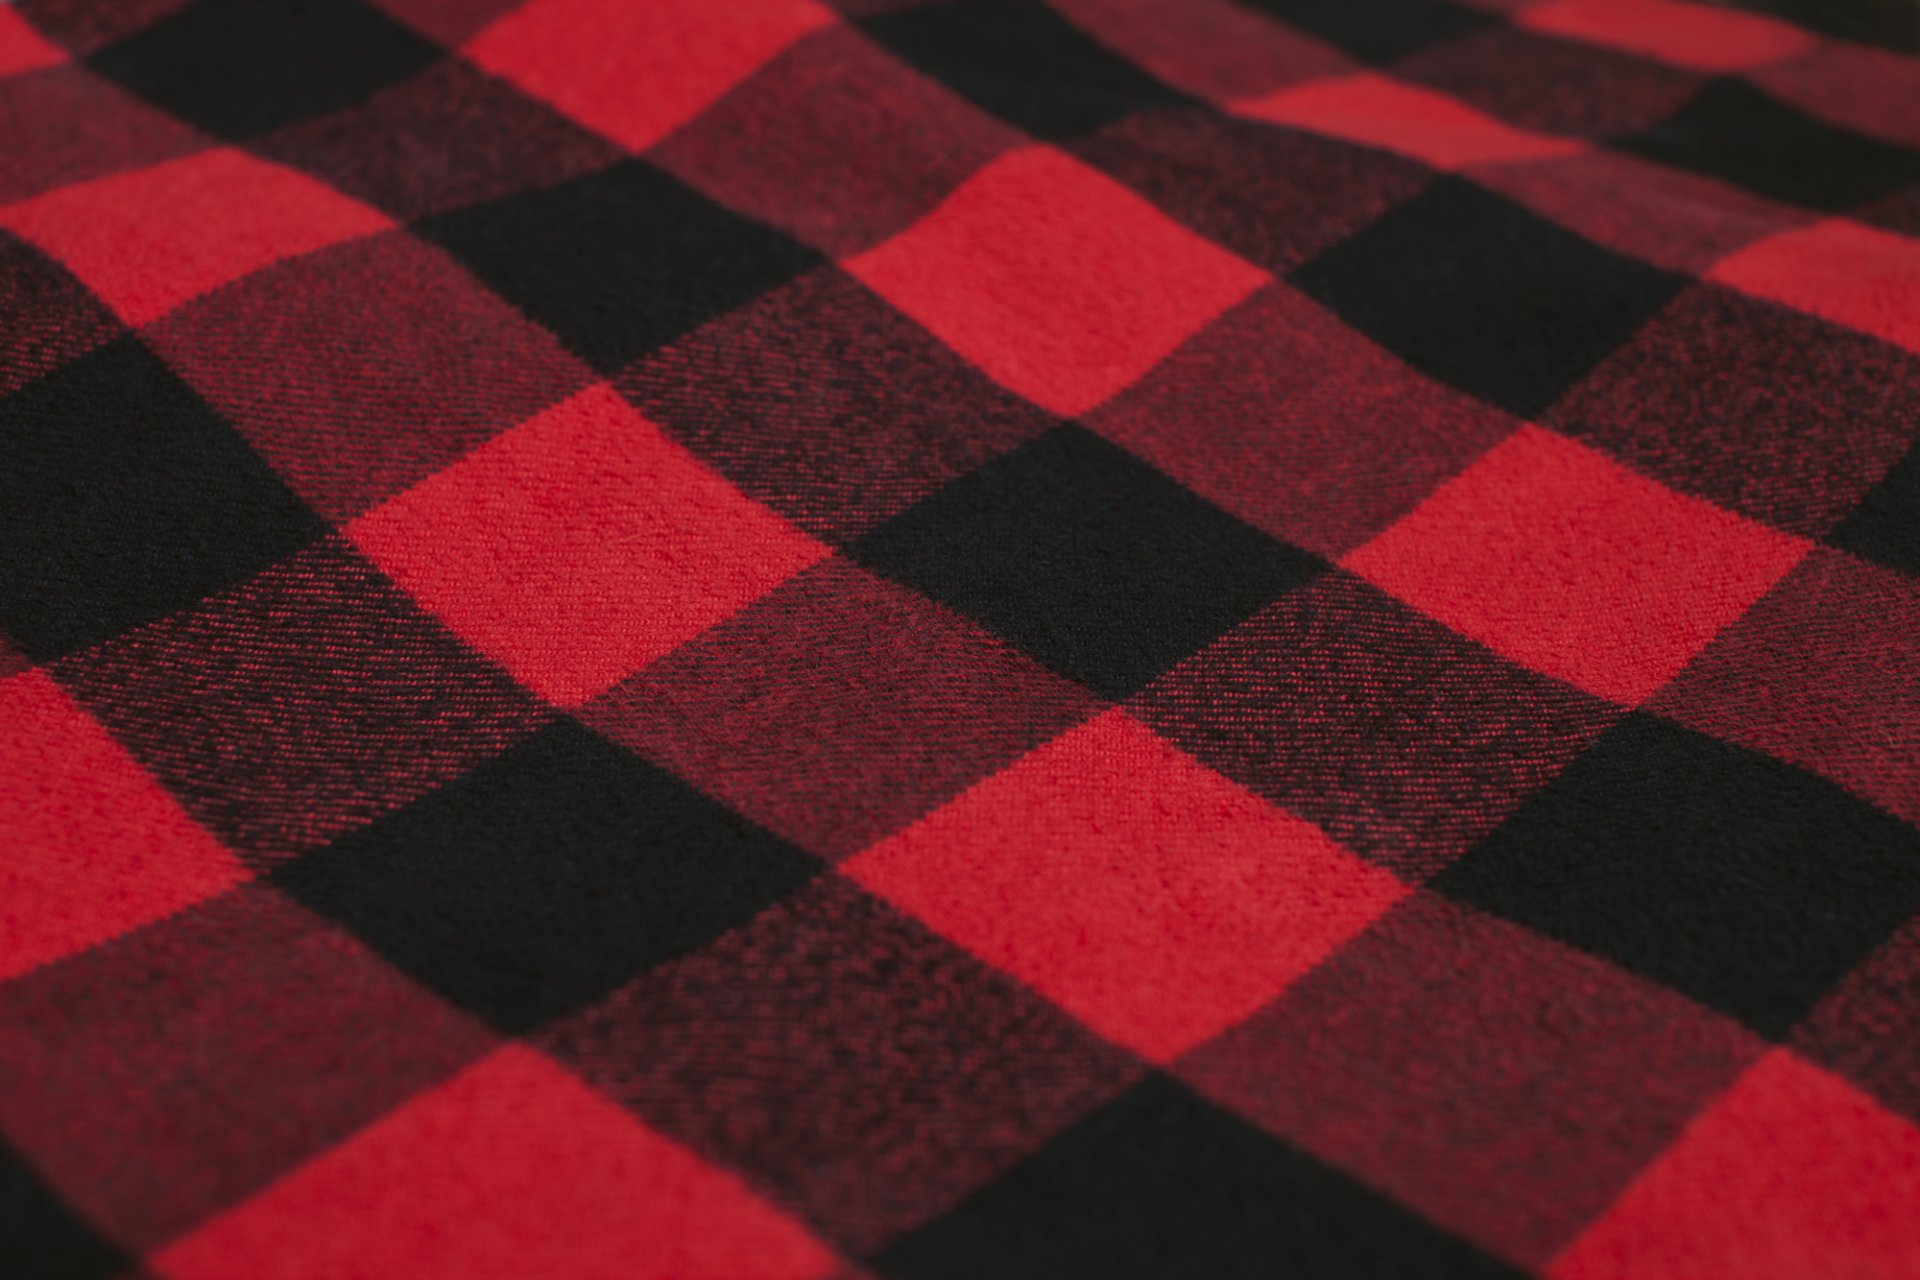 Flannel HD Wallpaper Background Image 2000x1333 ID